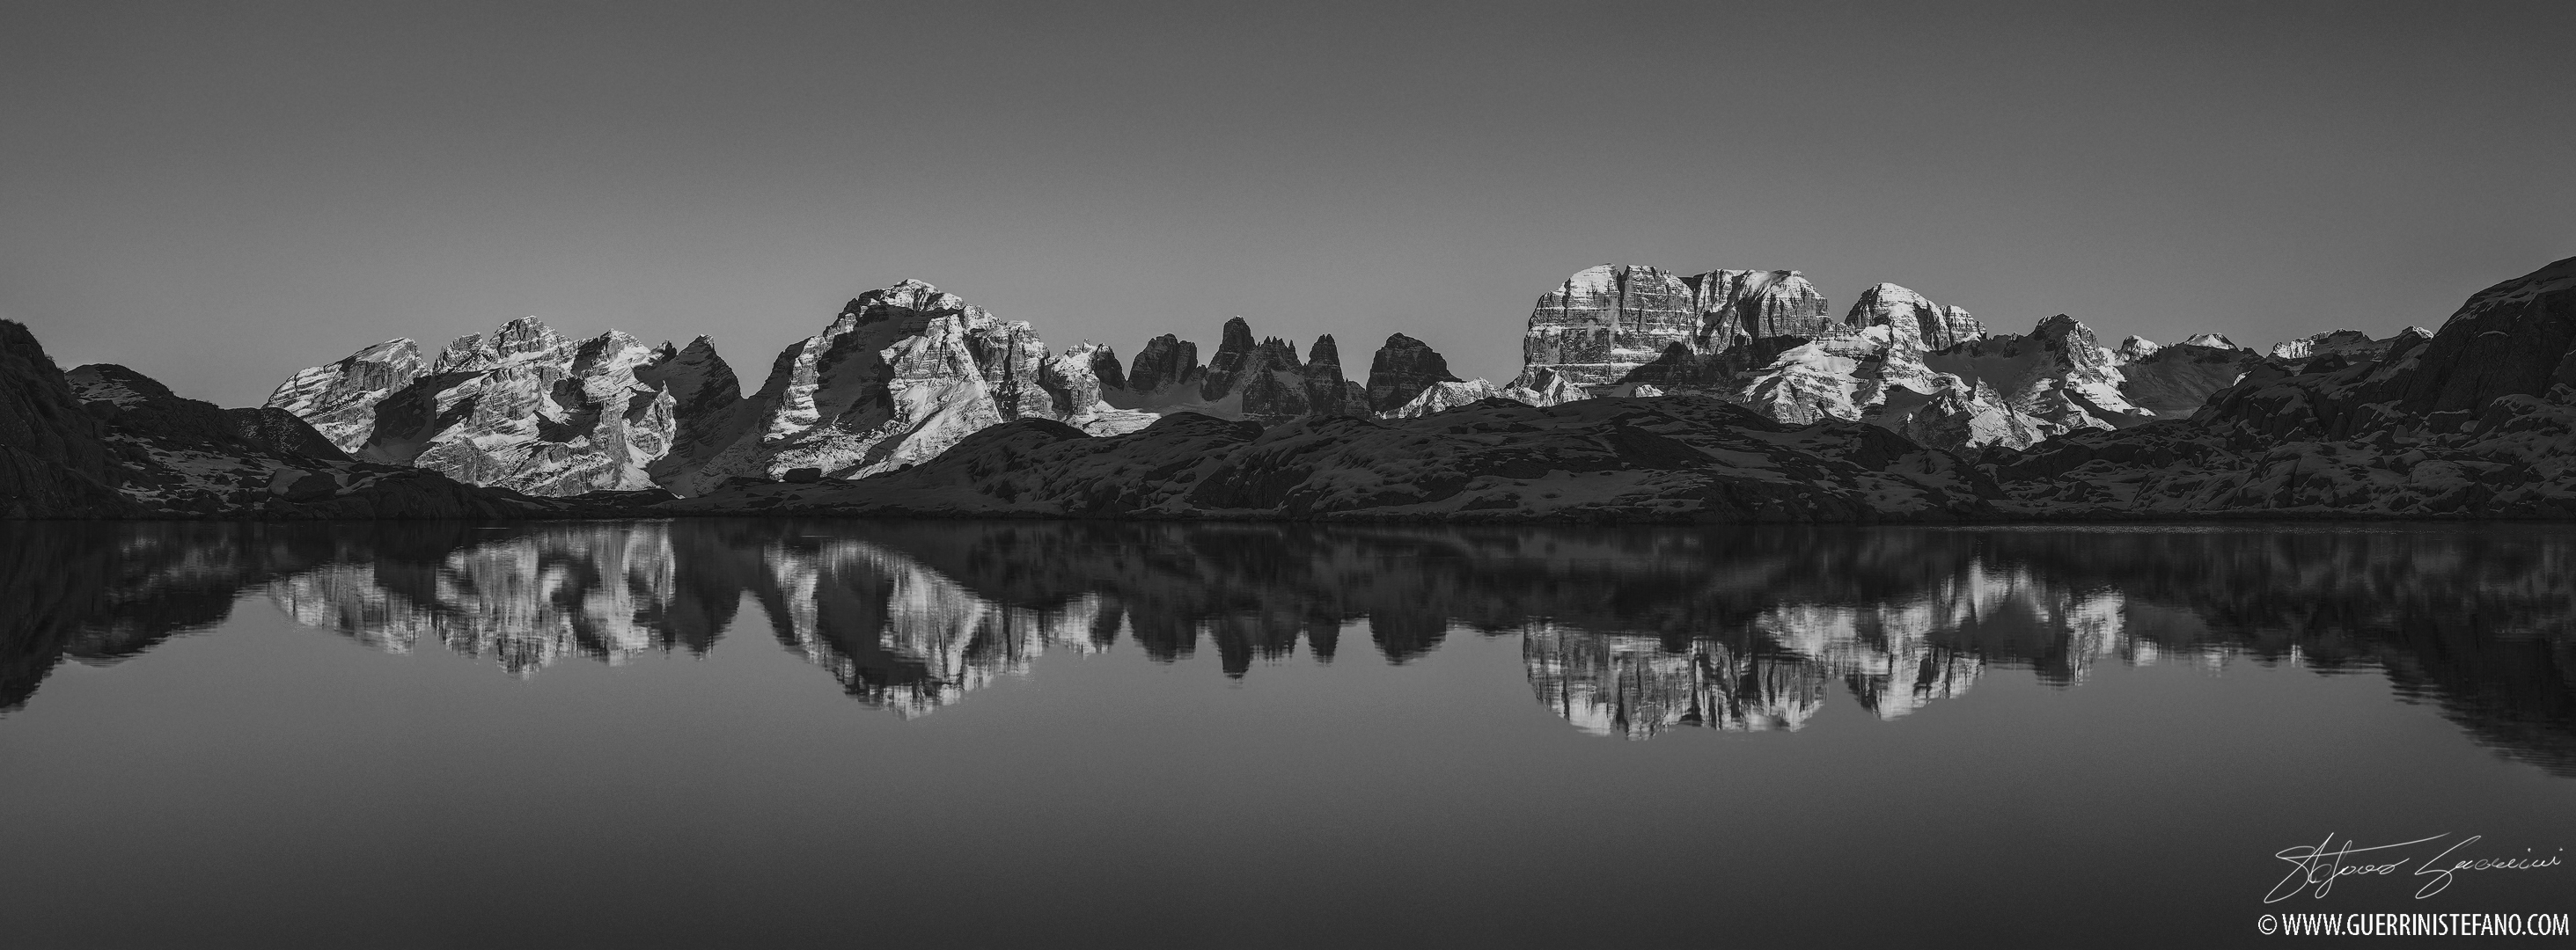 Pano Brenta 135mm 1000px BW by Guerrini Stefano